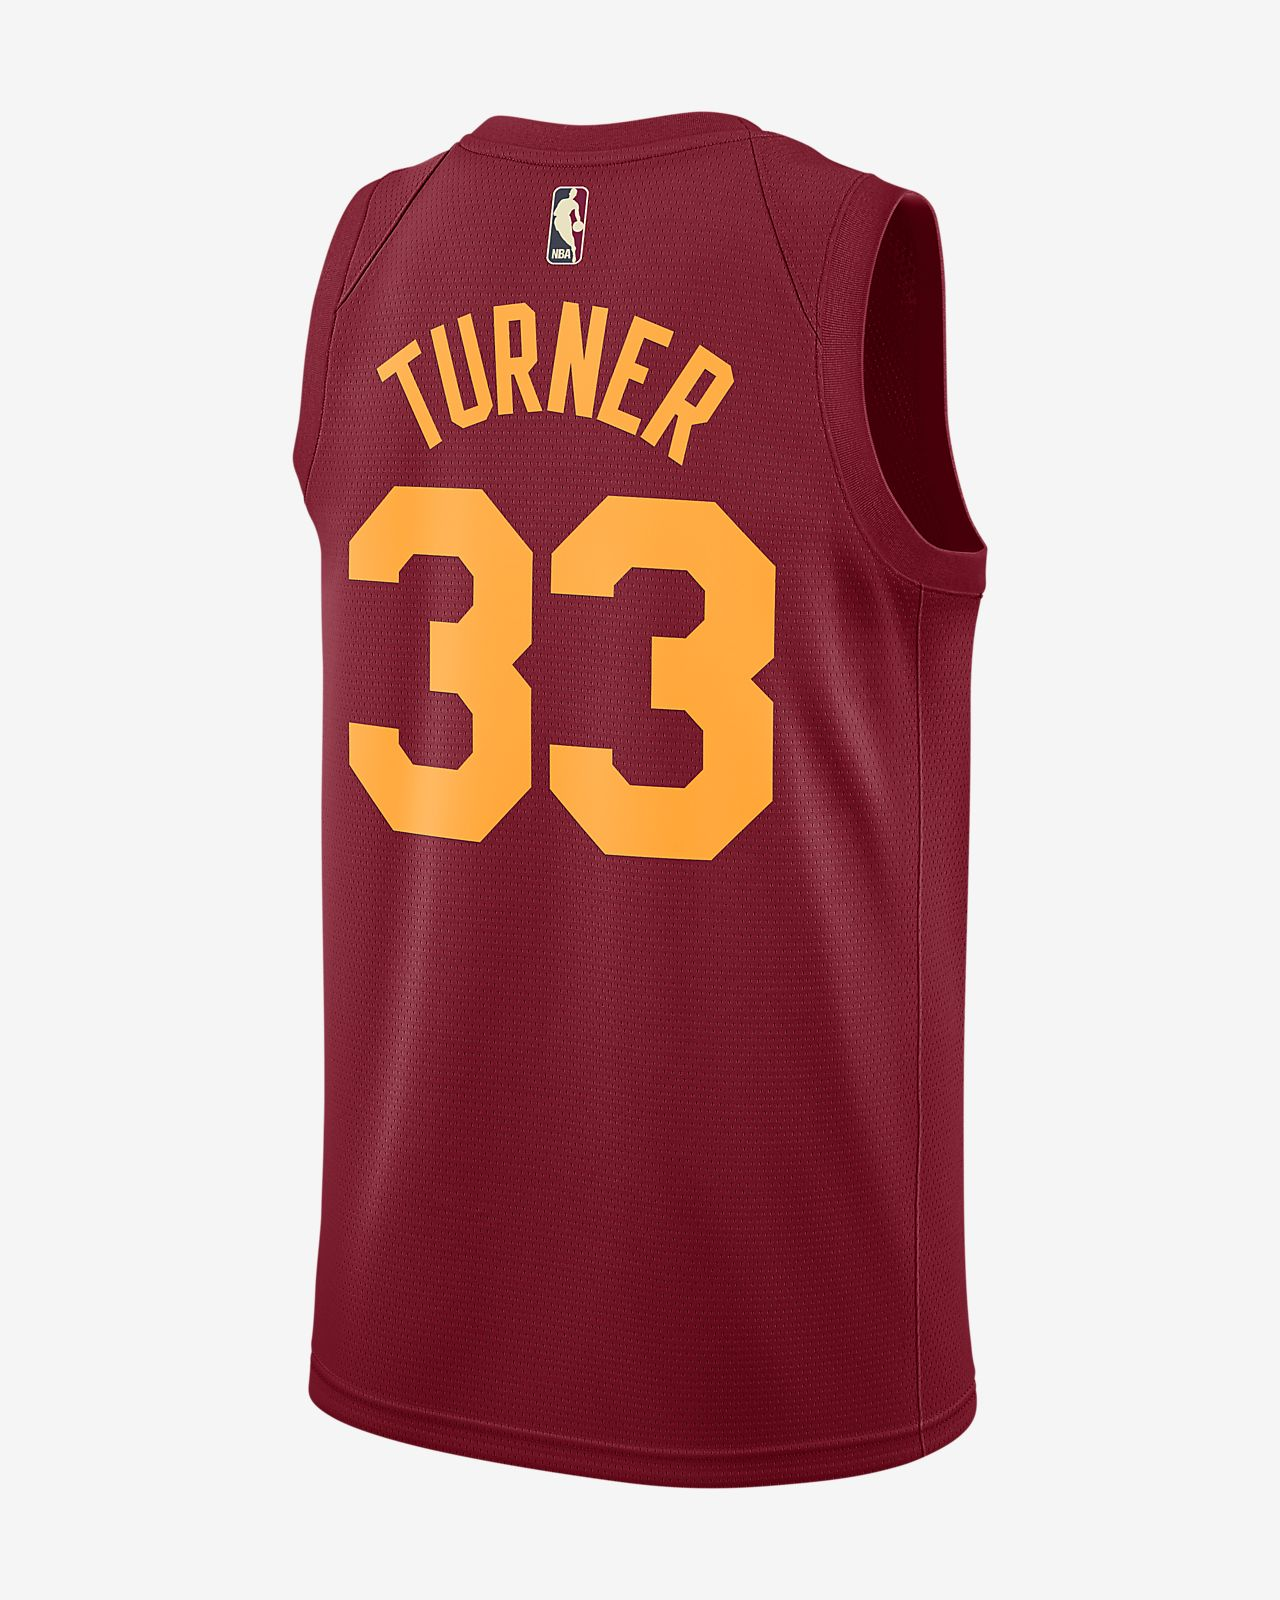 680905d5019 ... Myles Turner Classic Edition Swingman (Indiana Pacers) Men s Nike NBA  Connected Jersey